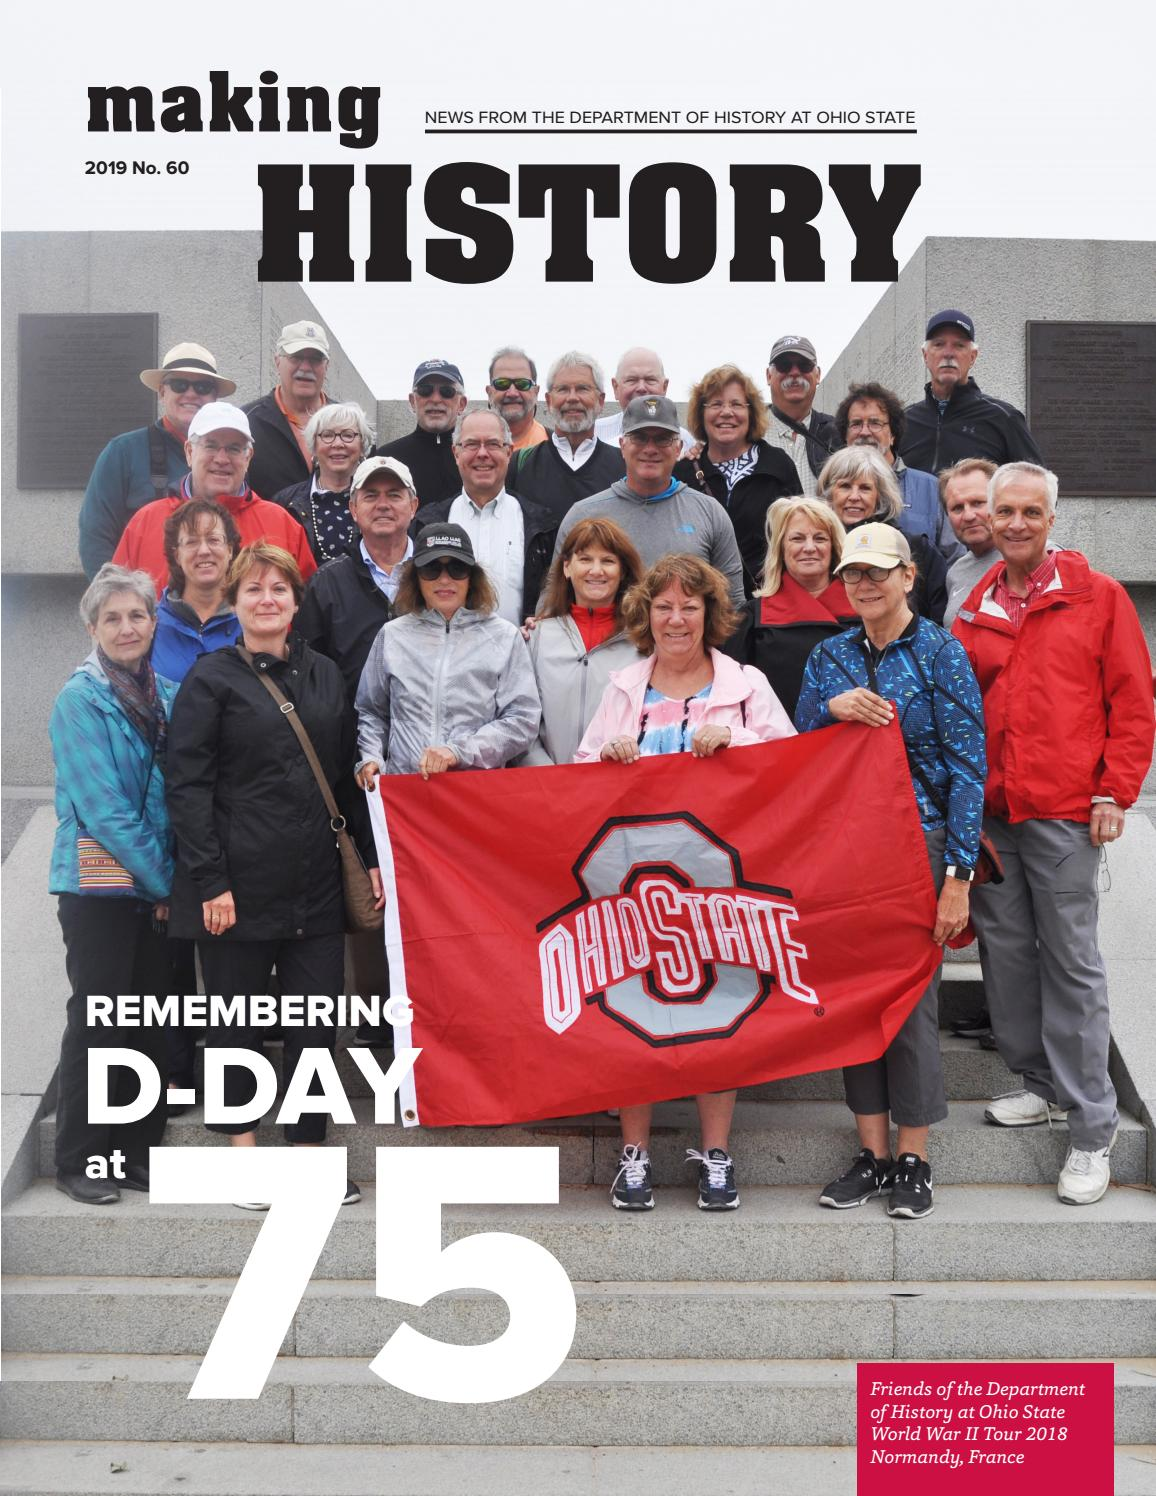 Making History News From The Department Of History At Ohio State 2019 No 60 By Department Of History At Ohio State Issuu